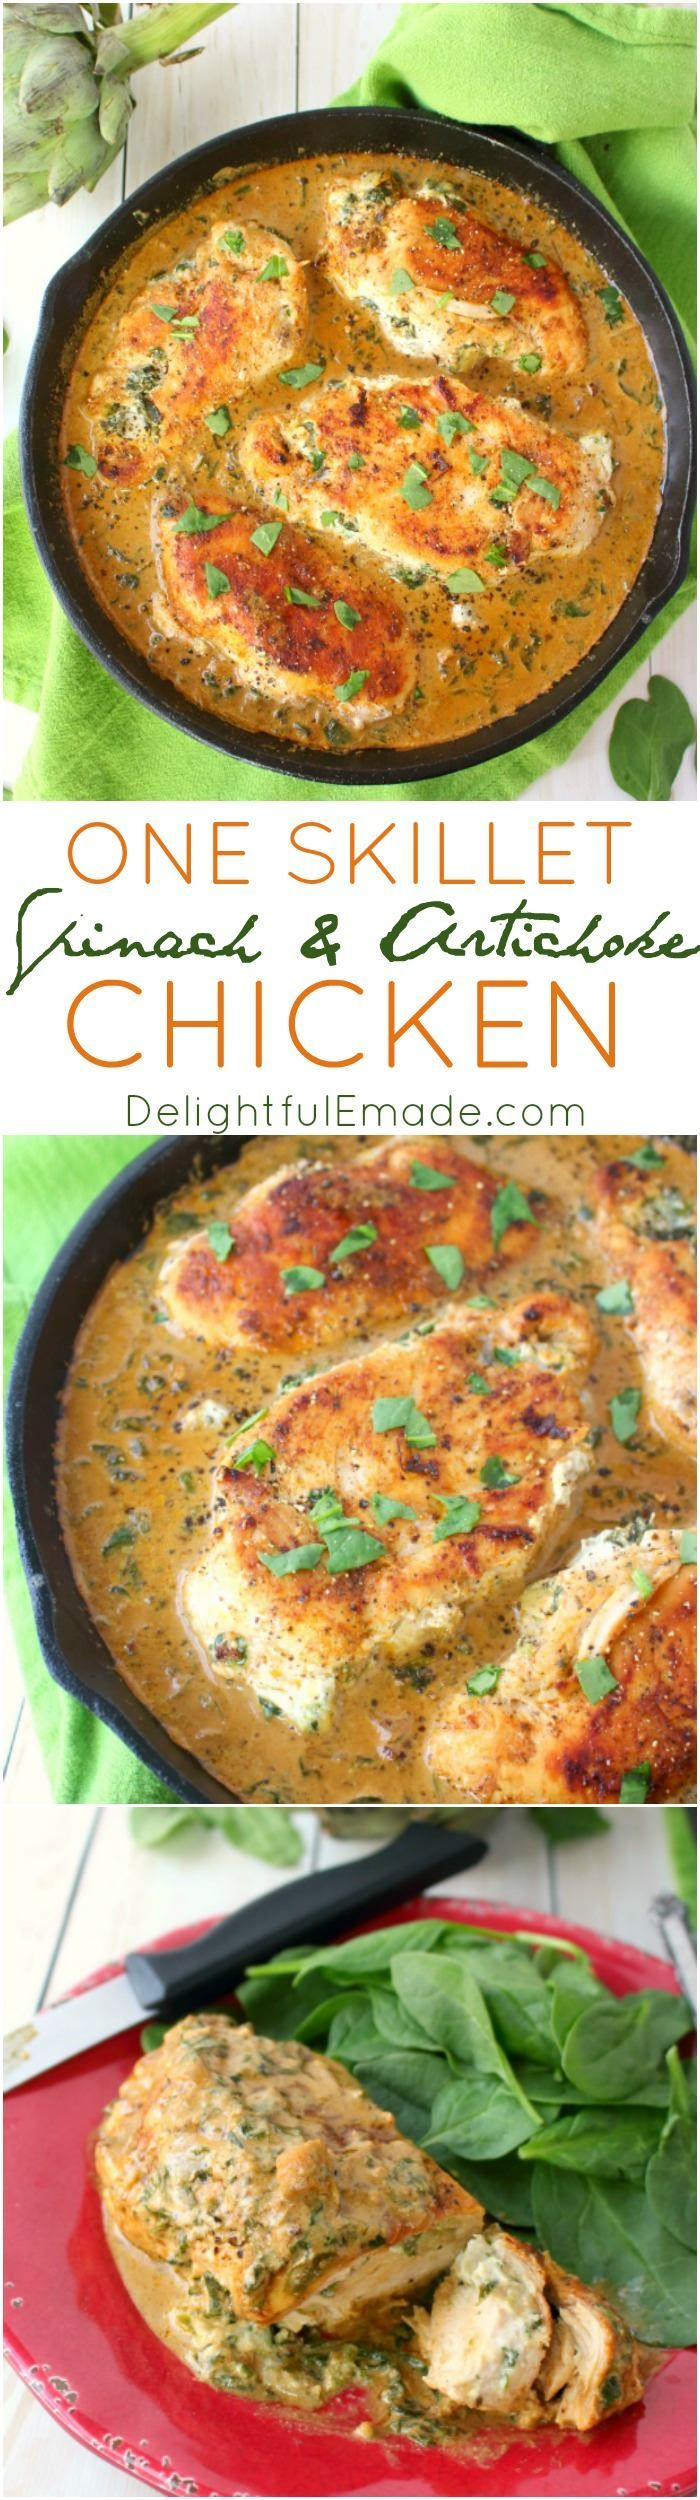 Let me introduce you to your new favorite chicken recipe!  This easy one skillet meal has all the flavors of Spinach and Artichoke Dip simmered together and stuffed into simple chicken breasts.  Incredibly flavorful, this delicious entree is the perfect d